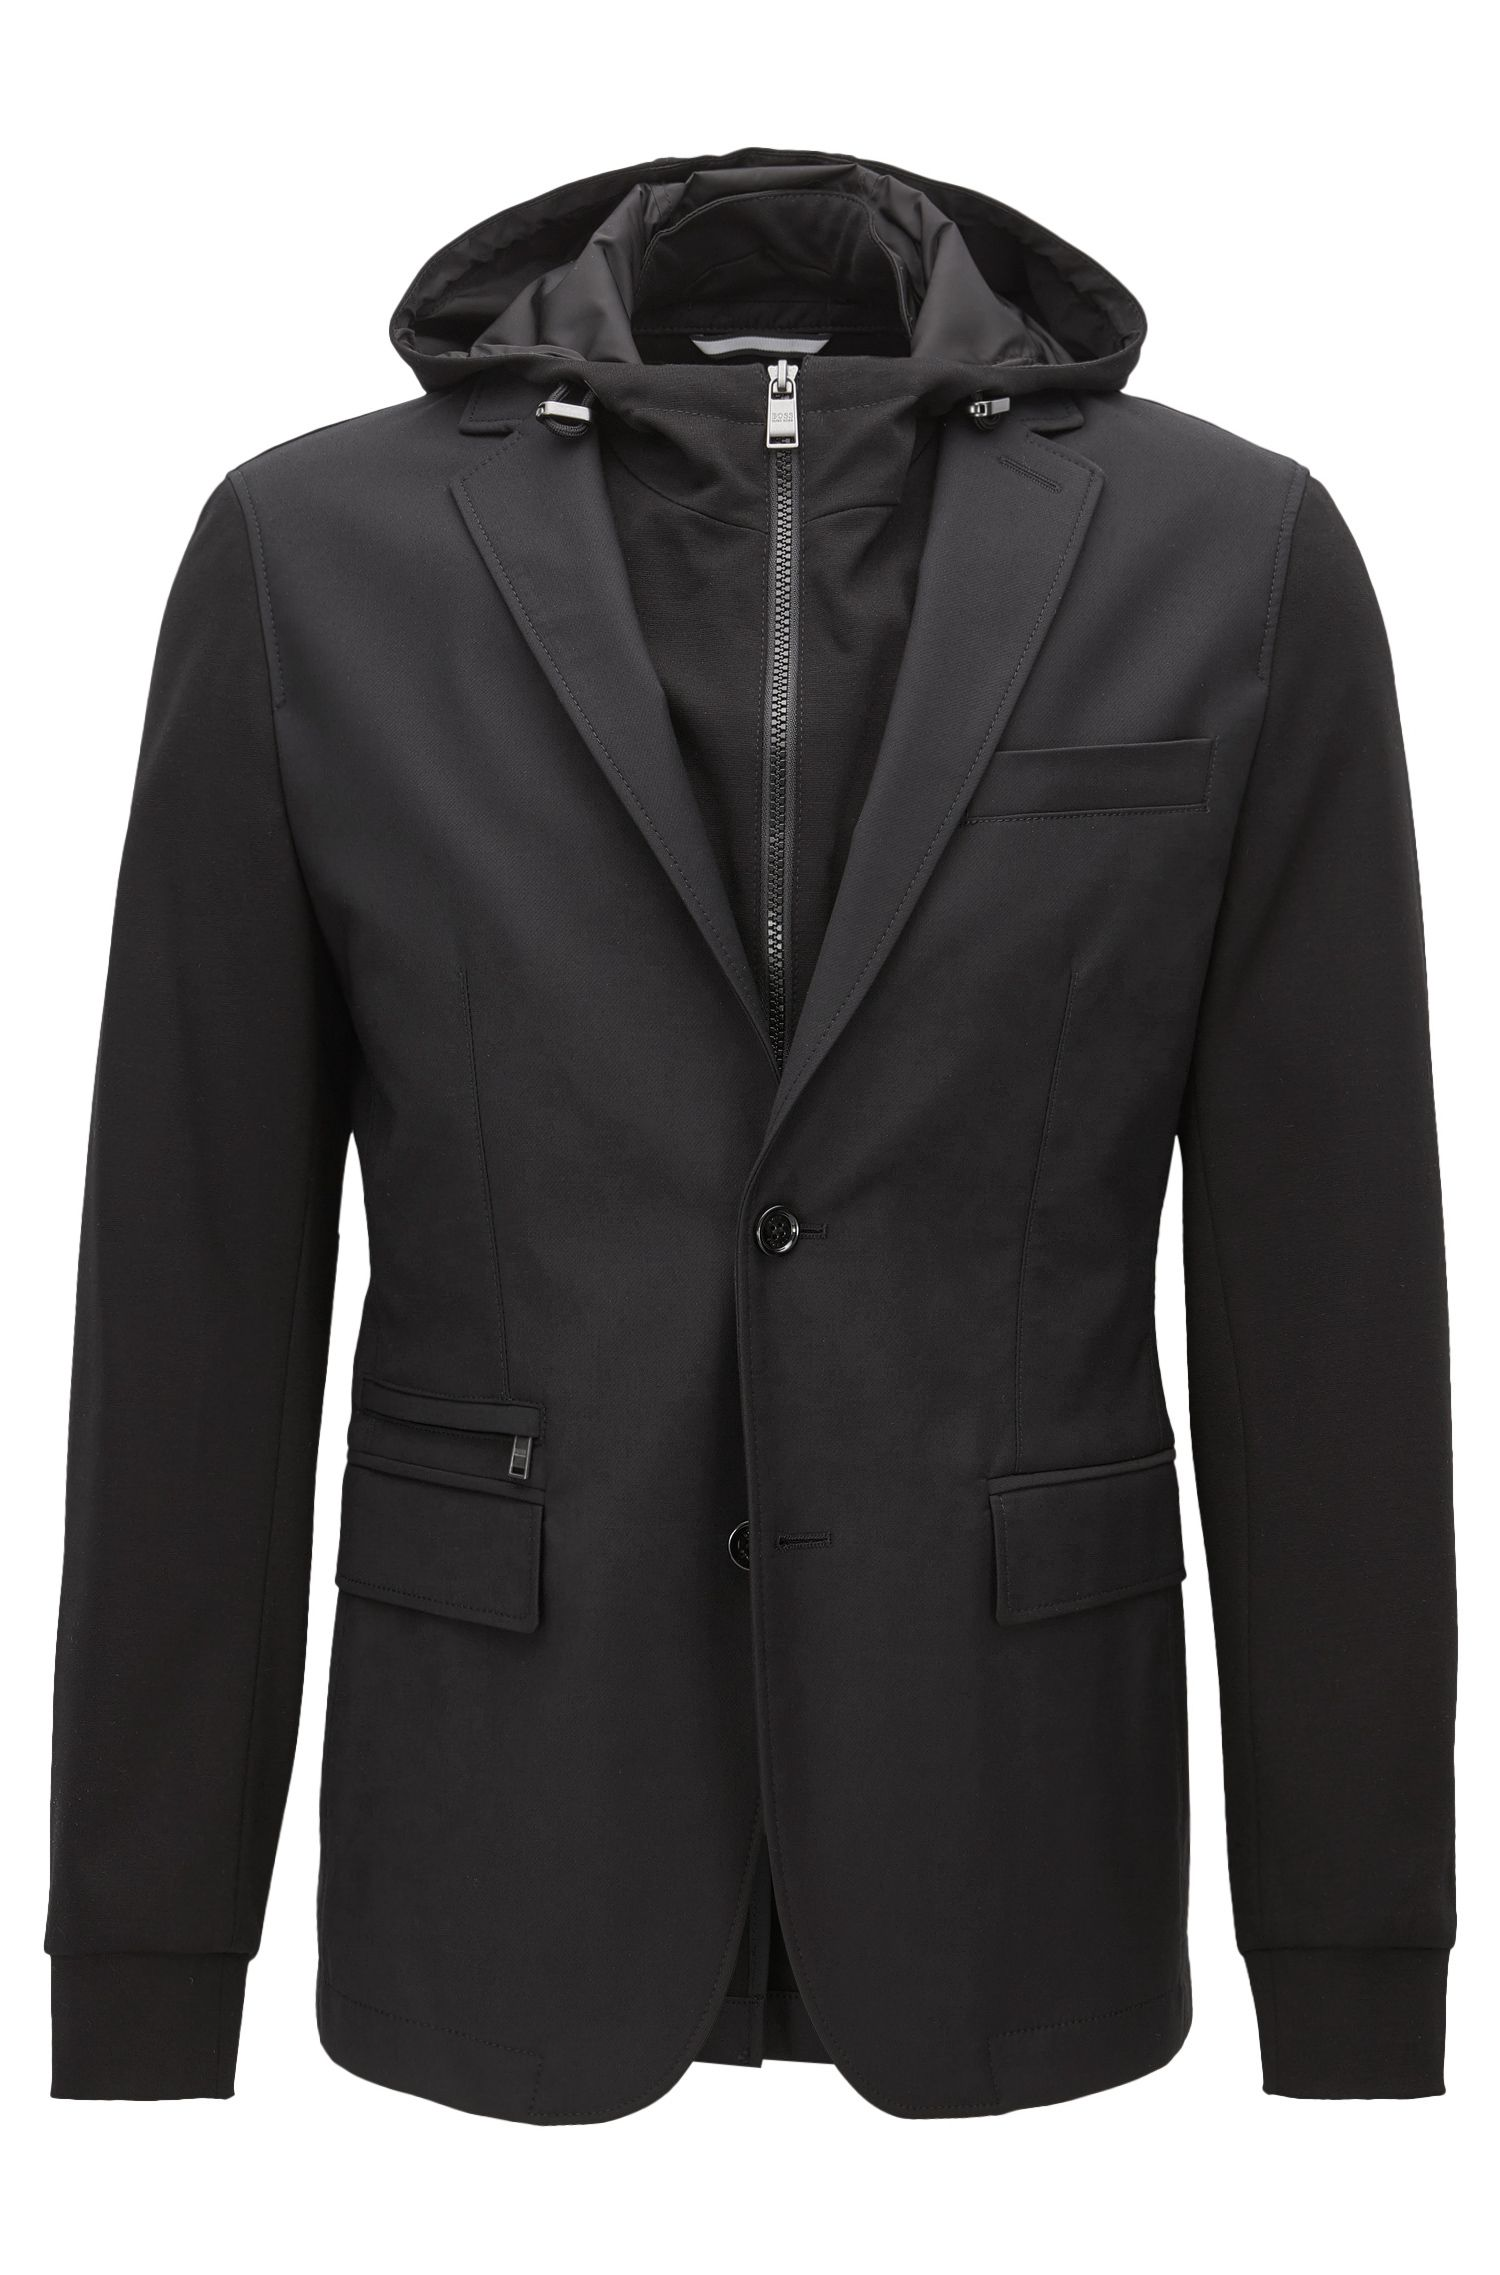 Slim-fit blazer in a technical cotton-rich fabric